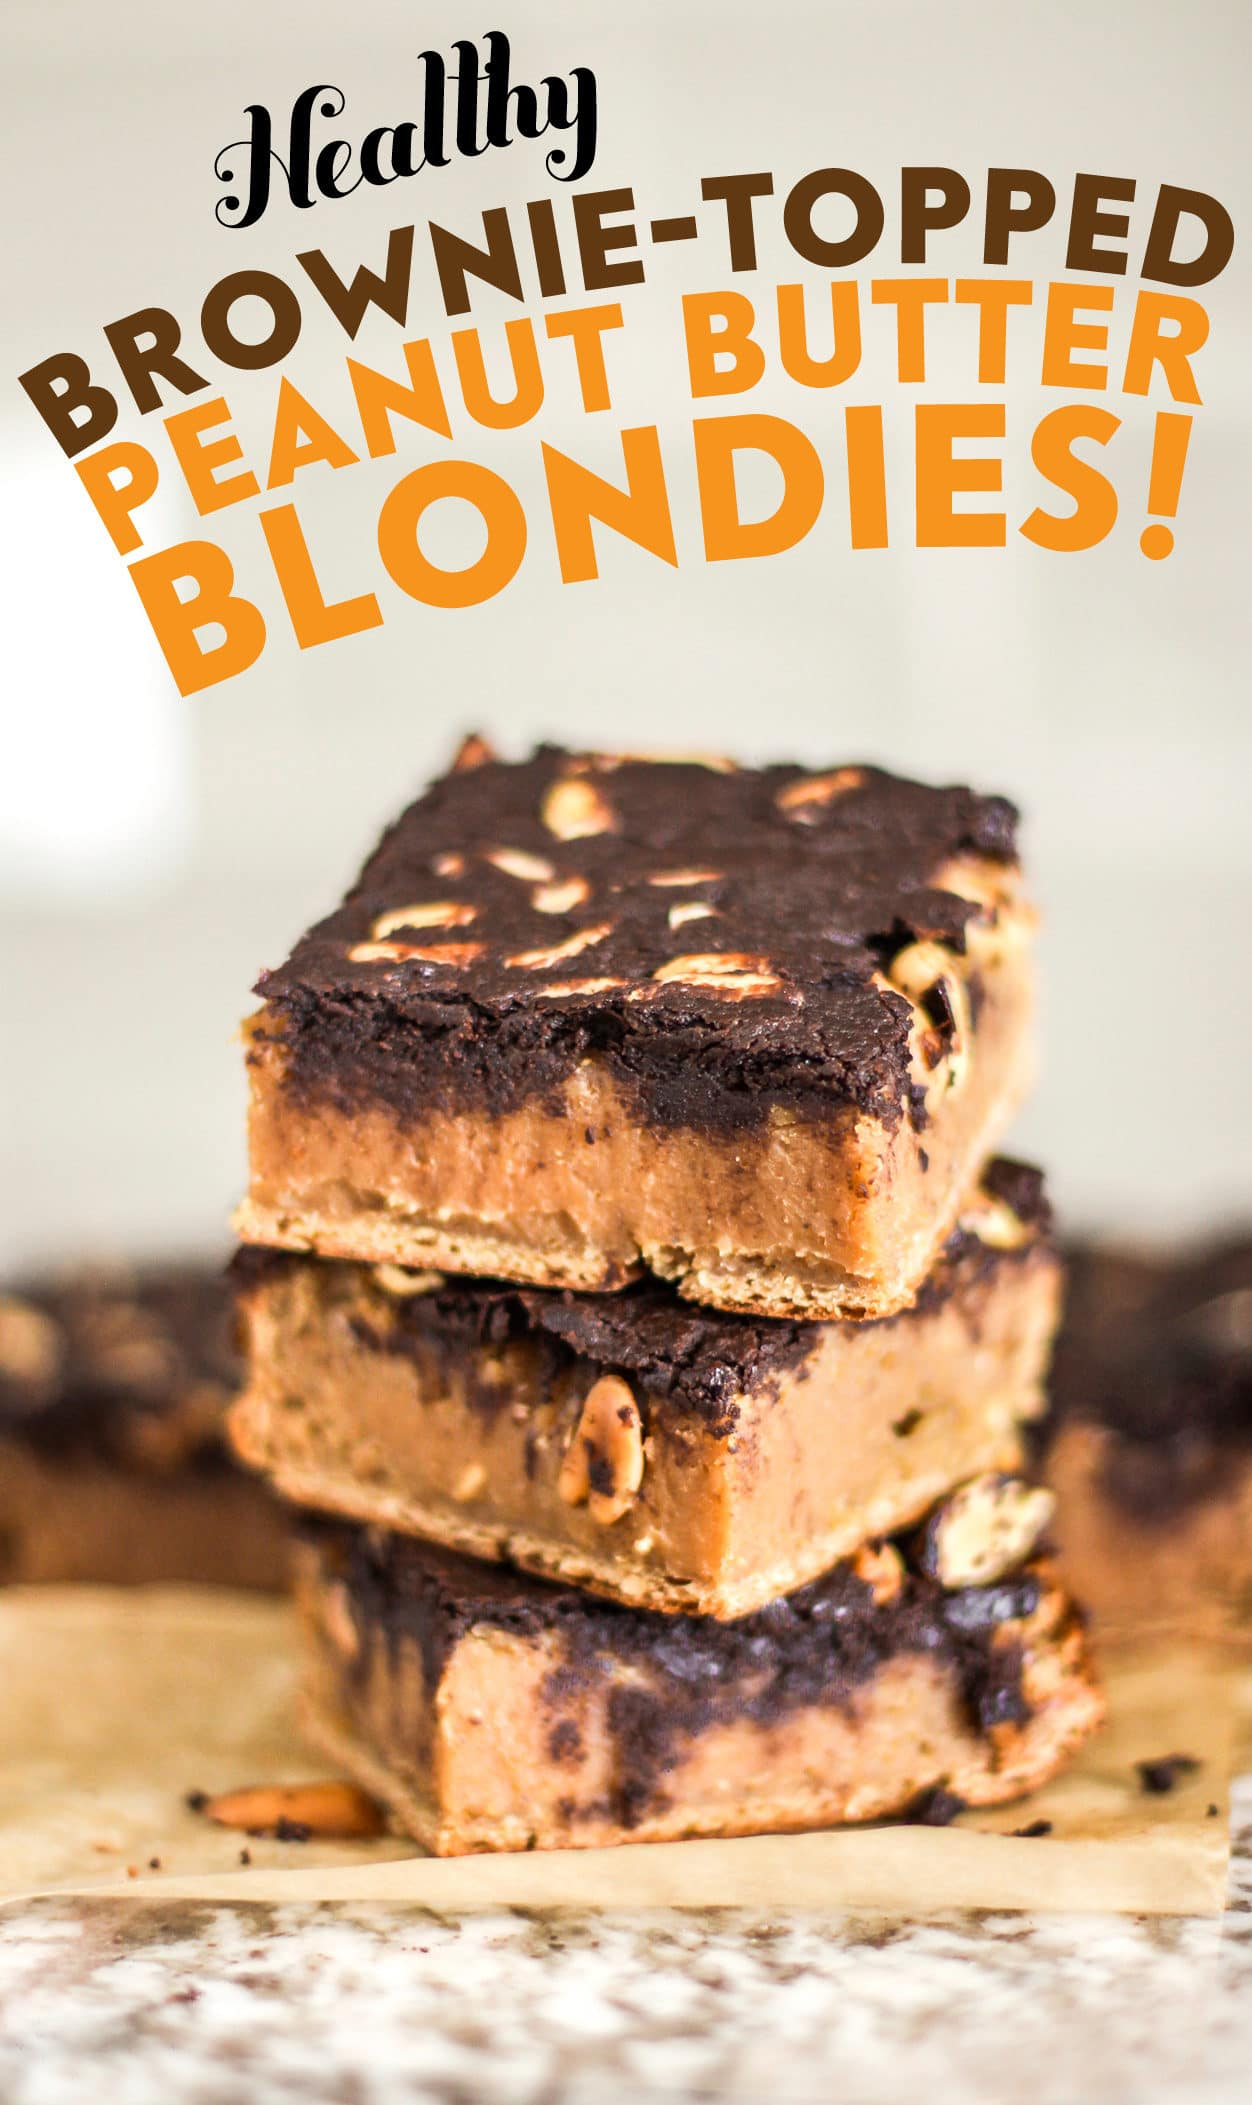 Healthy Brownie-Topped Peanut Butter Blondies (refined sugar free, high protein, high fiber, gluten free, vegan) - Healthy Dessert Recipes at Desserts with Benefits